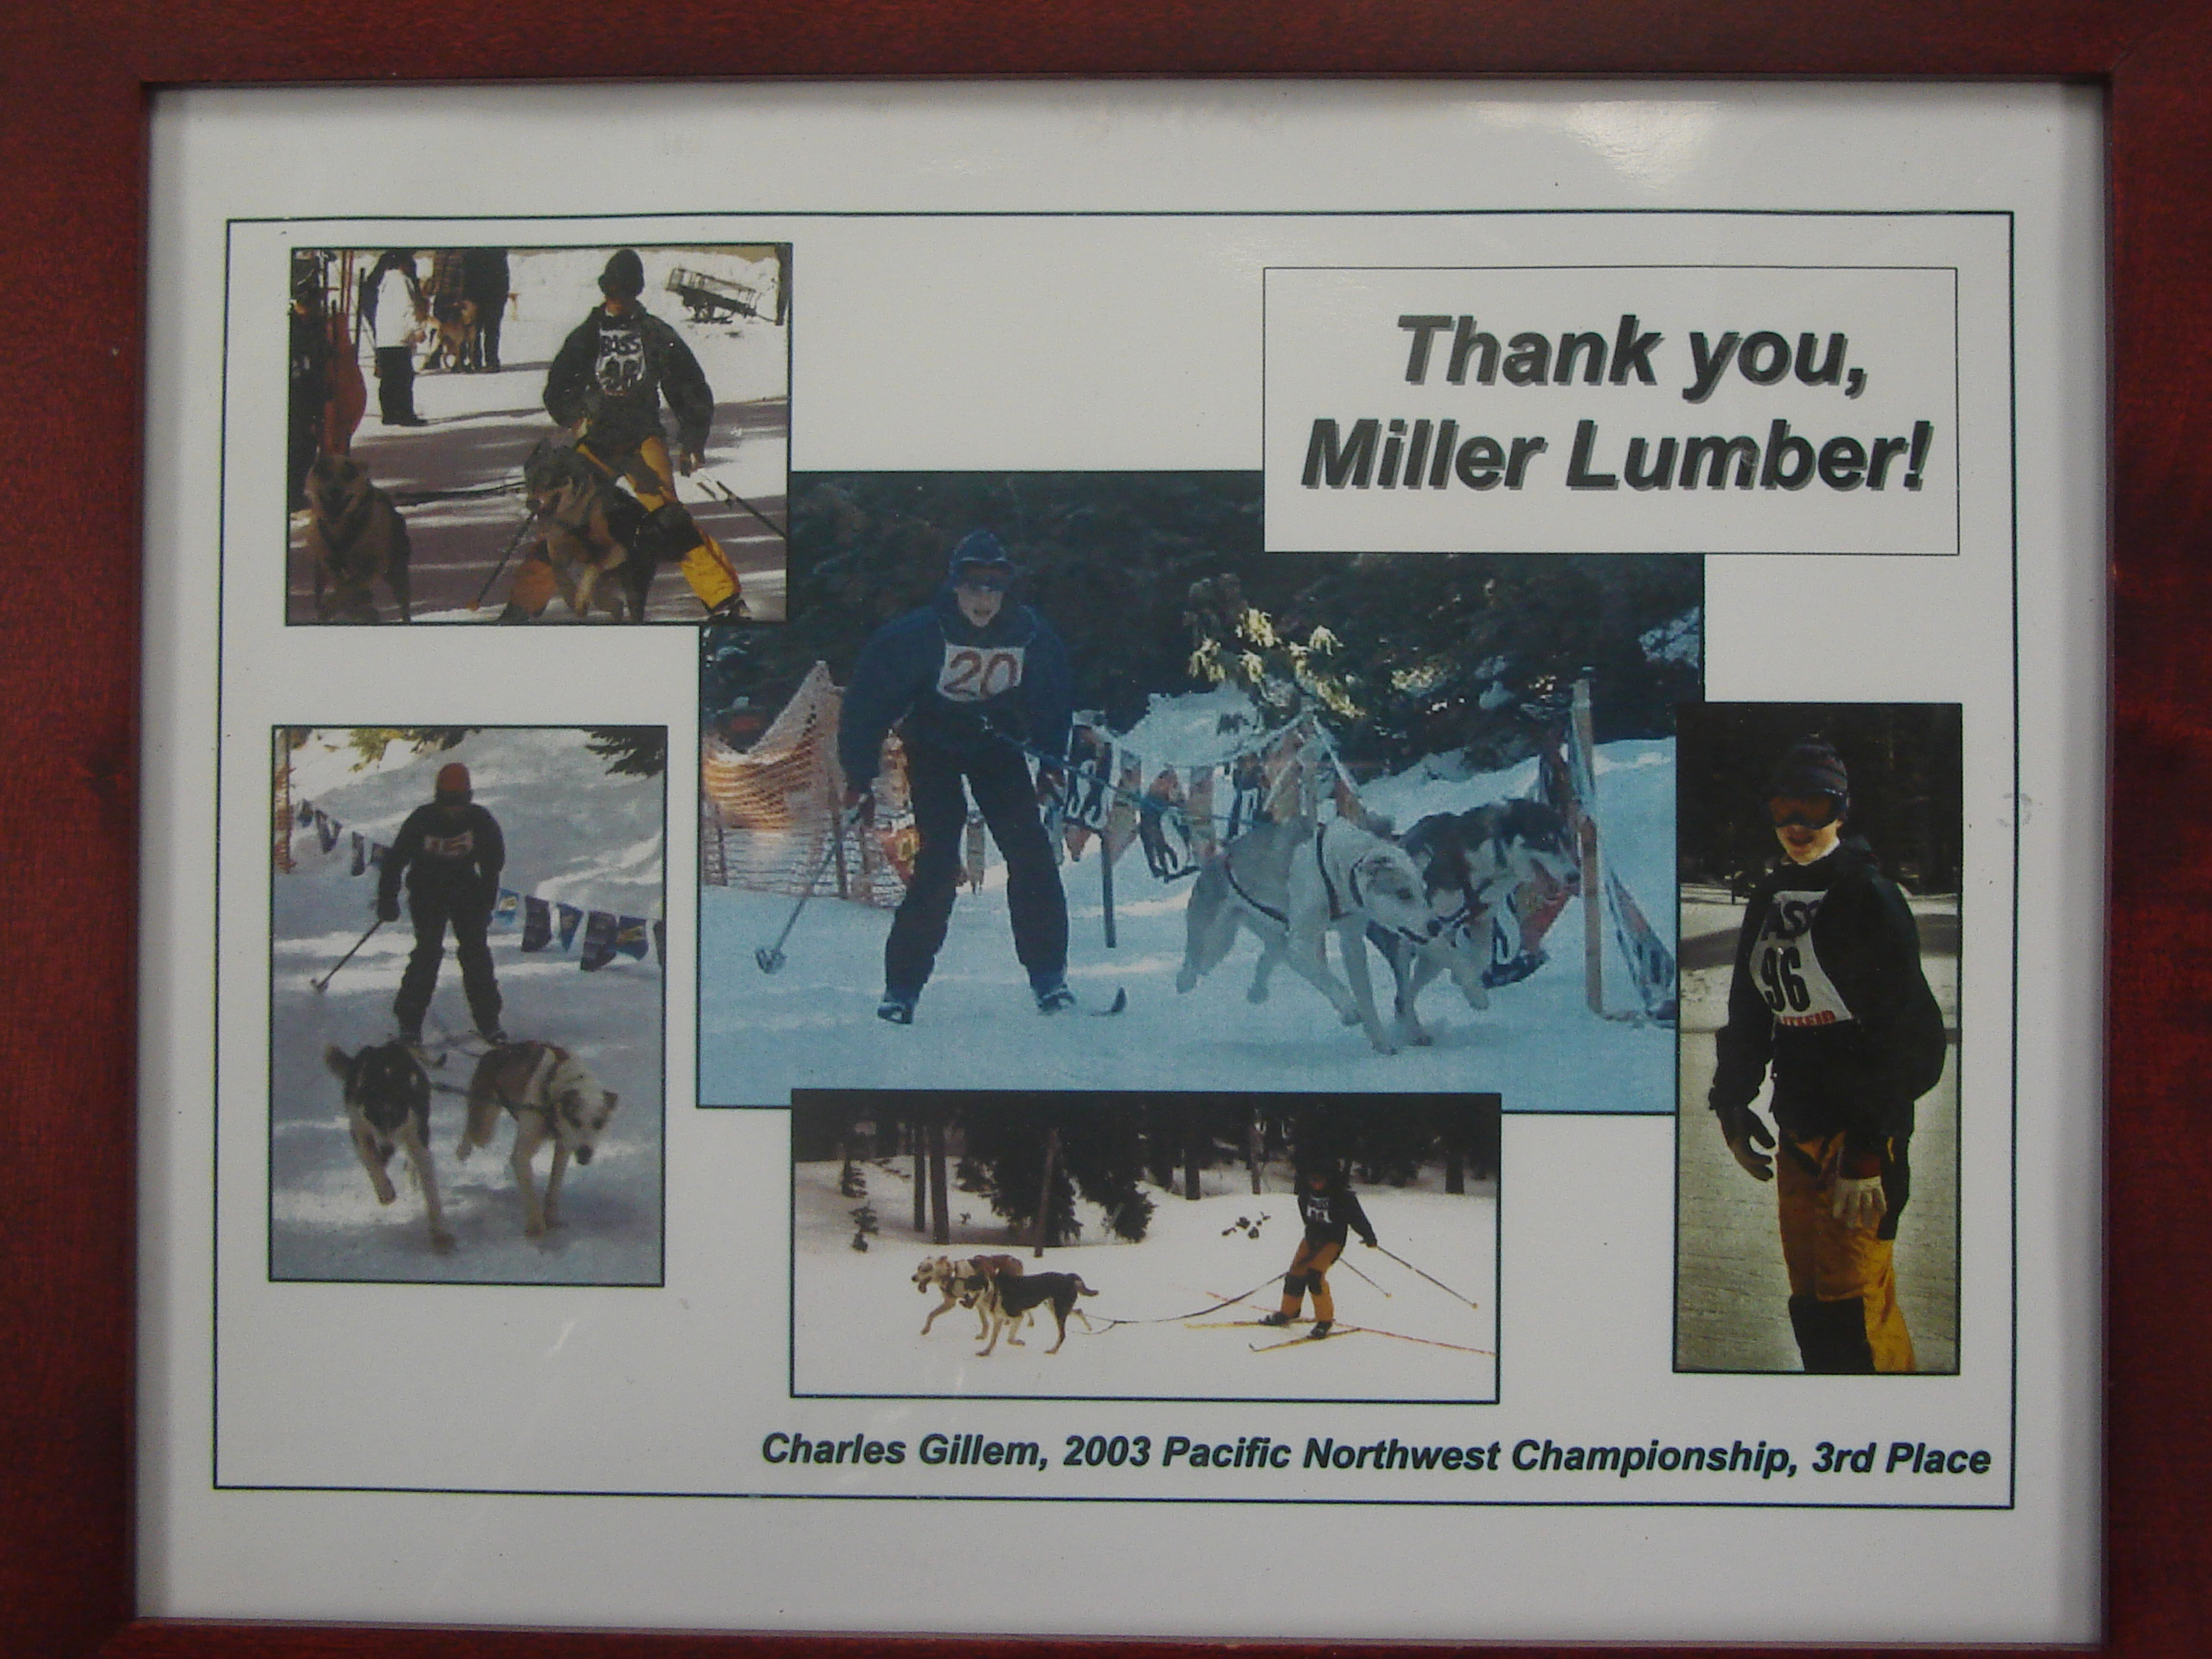 Supporting the growing sport of Skijoring, Miller Lumber sponsored Charles Gillem, the 2003 3rd place winner of the Pacific Northwest Championship.